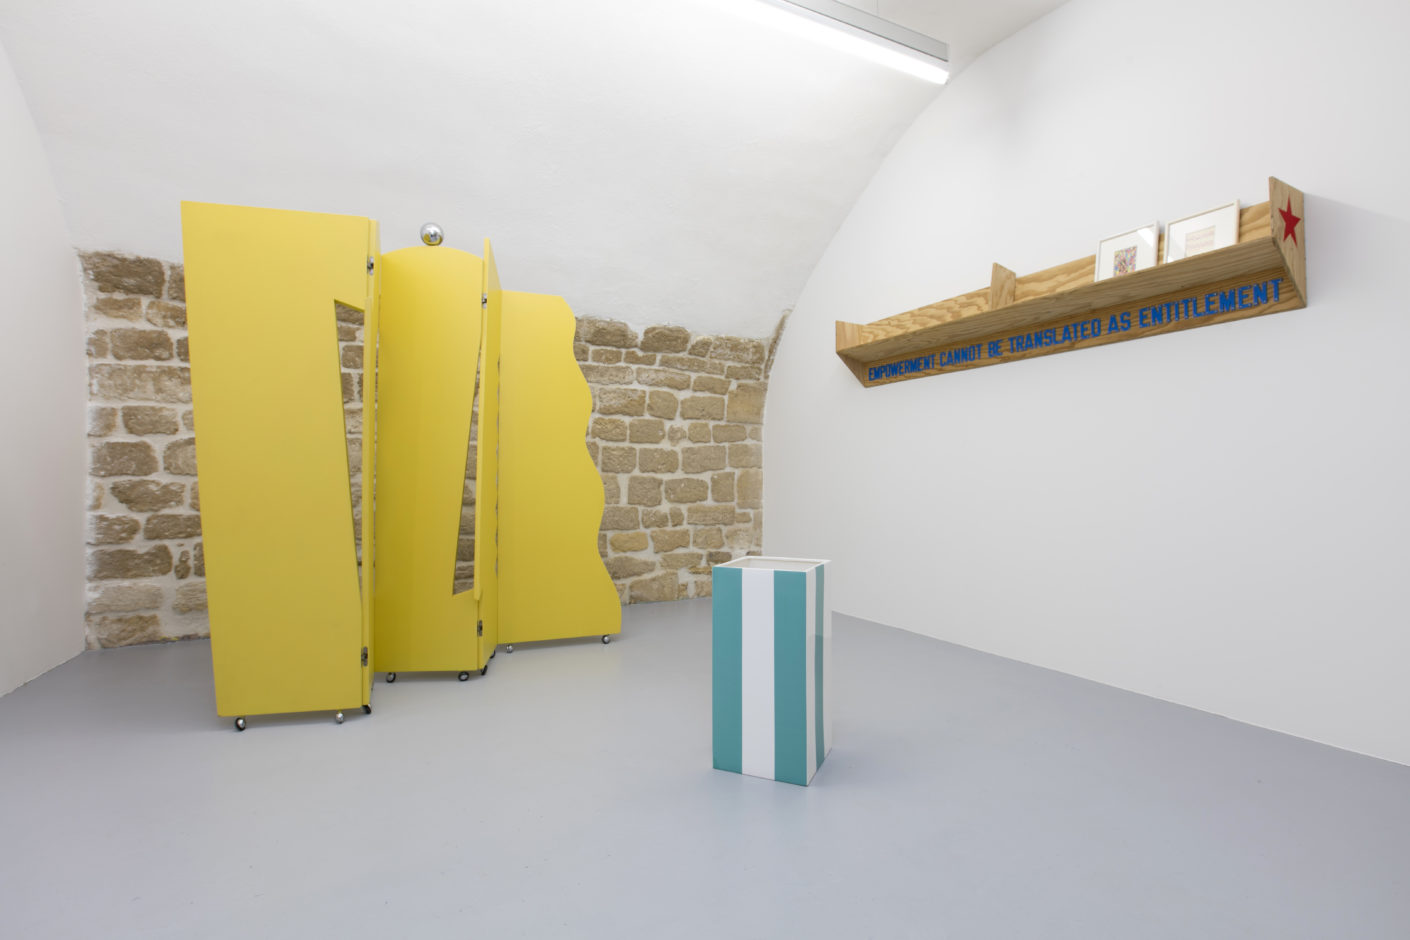 """Les cent vases"" von Daniel Buren, dahinter der Paravent ""Virgin"" von Dan Friedman, an der Wand Regal ""Empowerment can not be translated as entitlement"" von Lawrence Weiner"